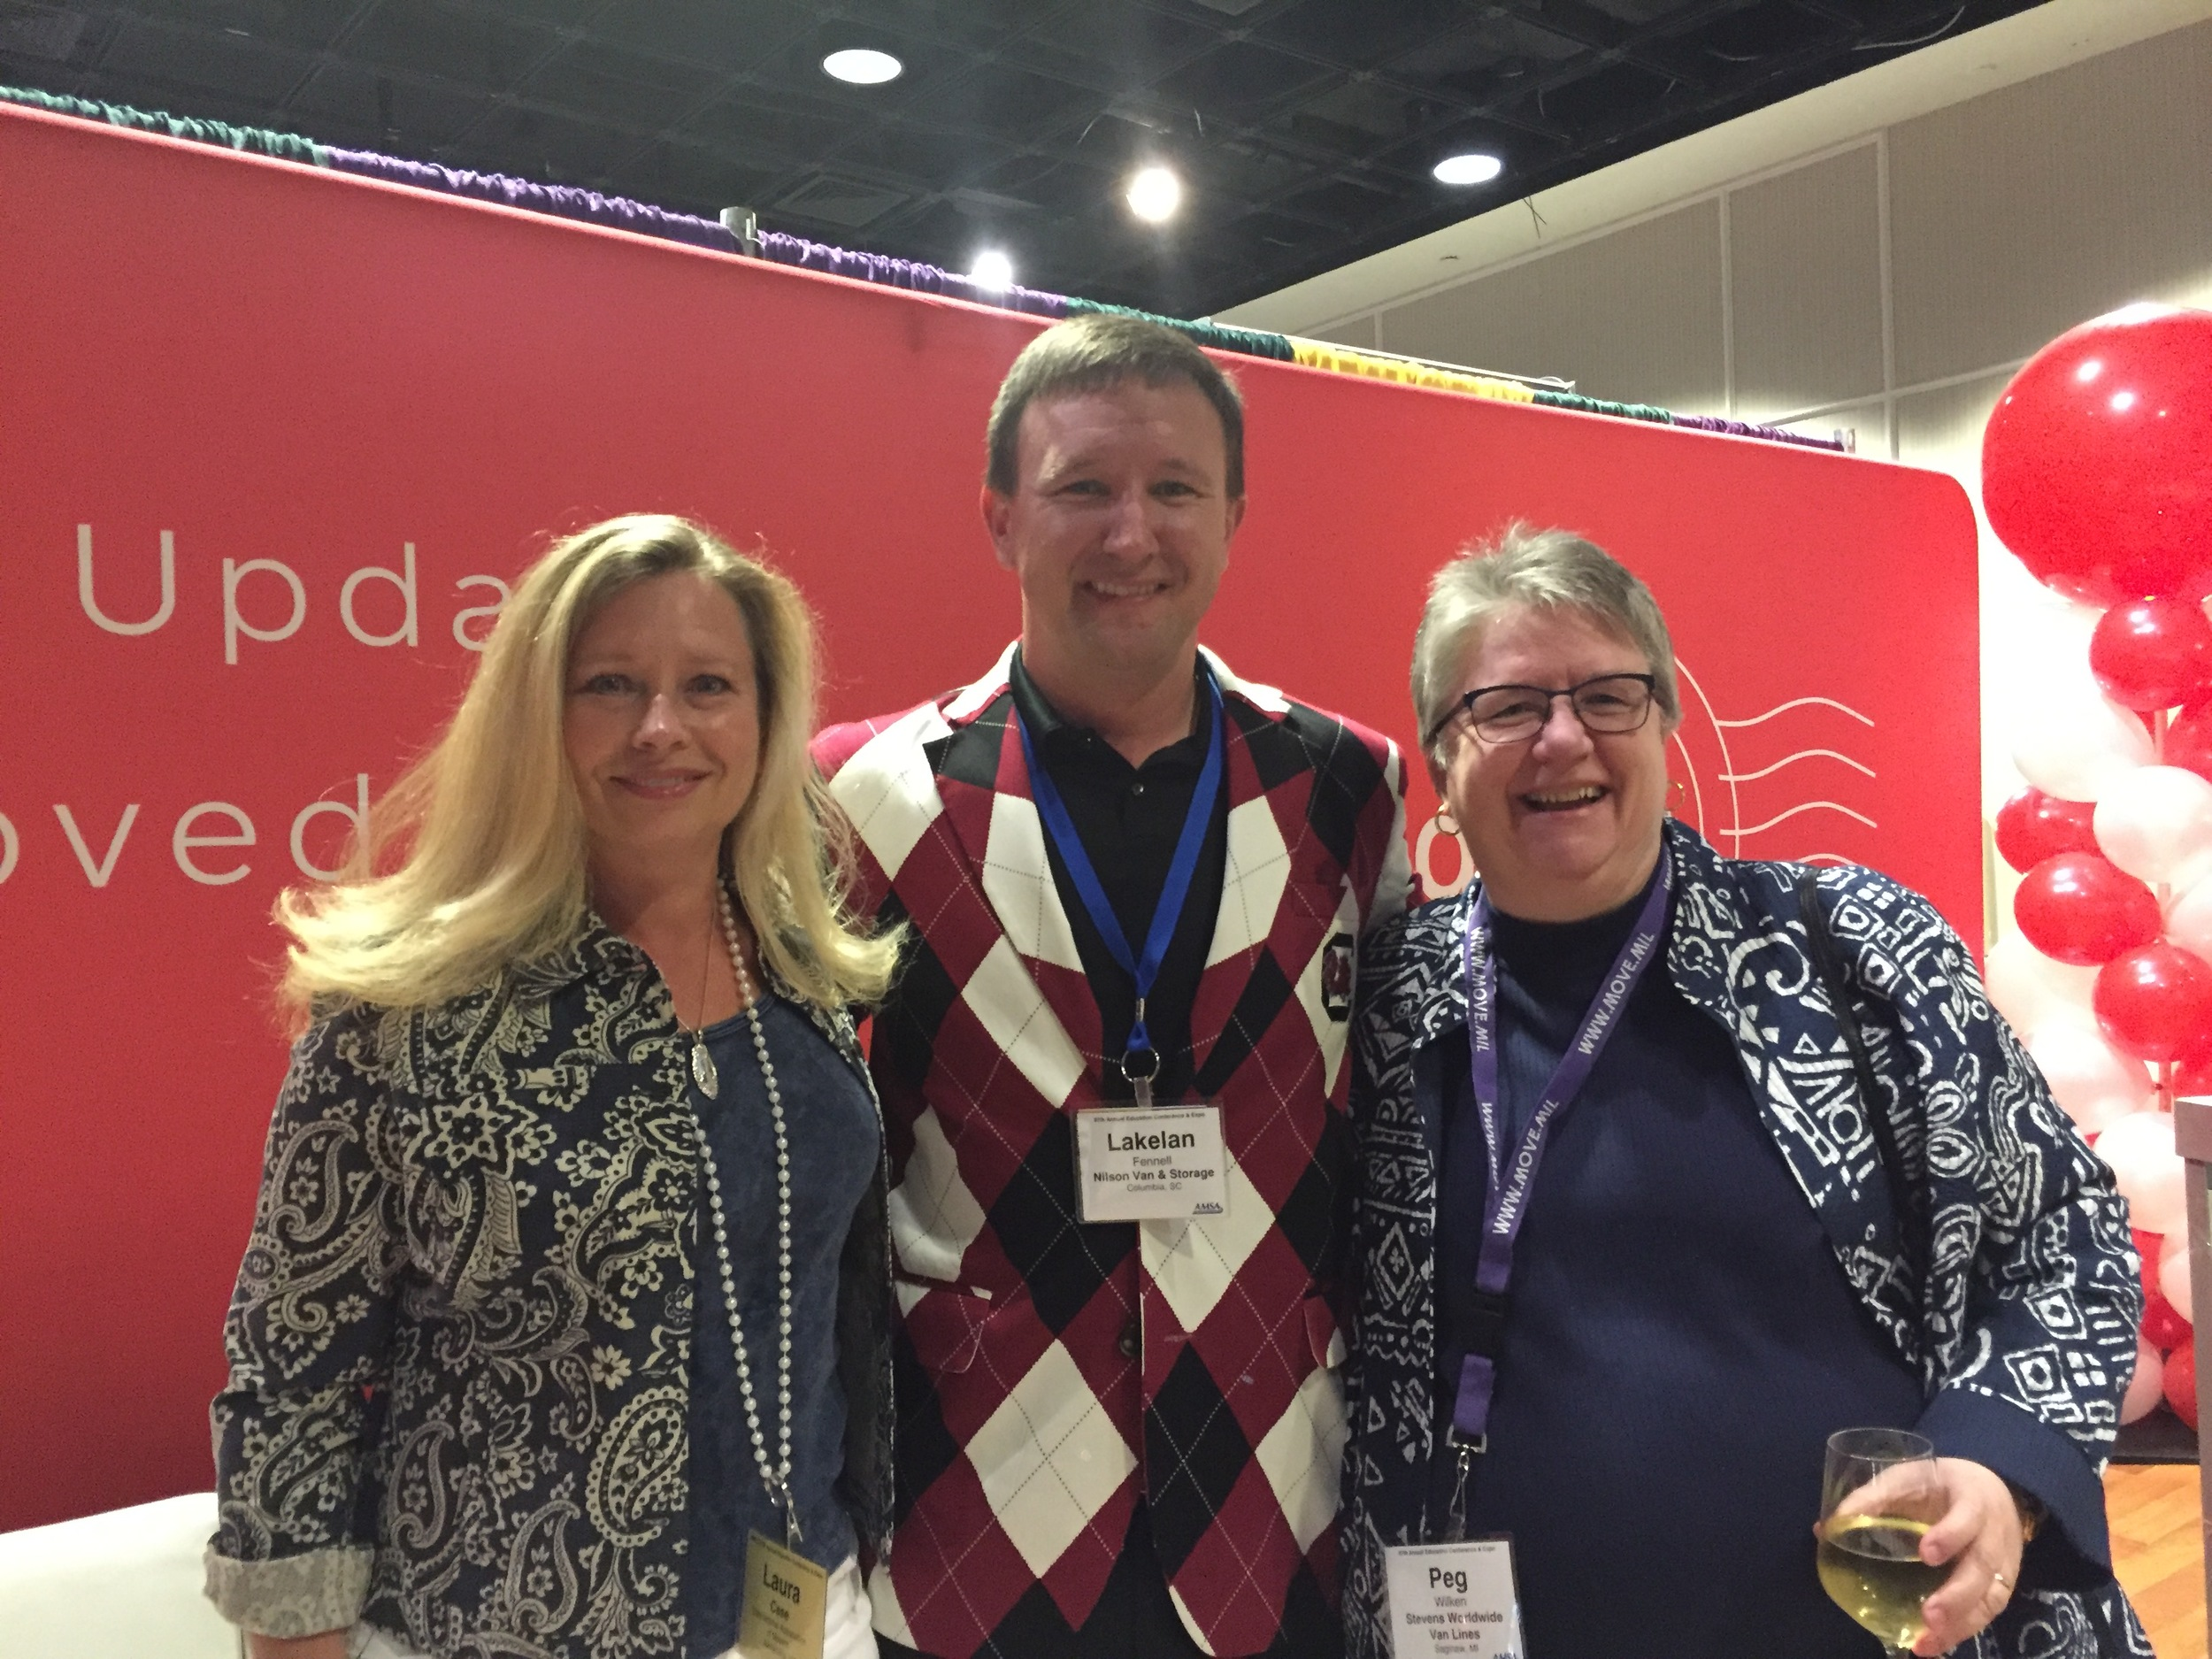 IAM, Nilson Van & Storage, and Stevens Worldwide visiting the Updater booth!